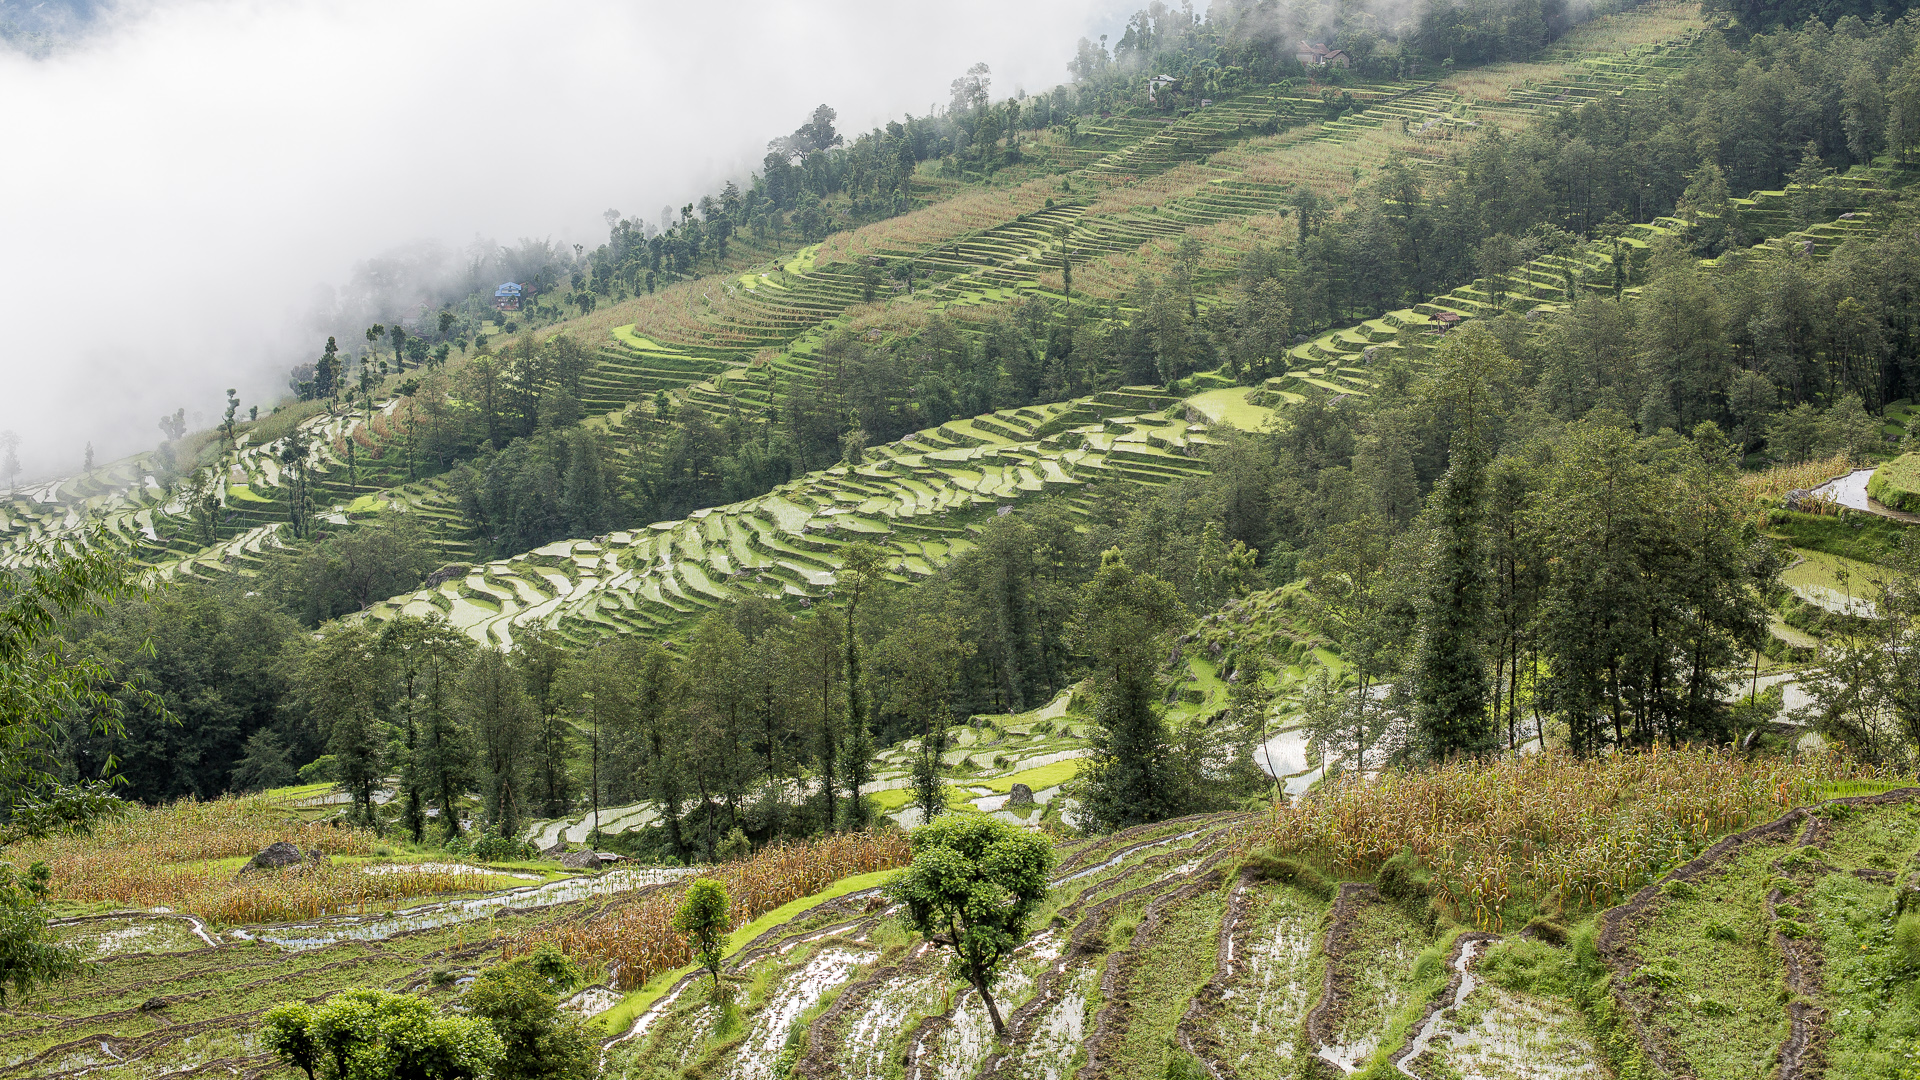 Morning view from Rohit's uncle's house. Morning mist is slowly moving up the mountainside after a night of heavy rain.